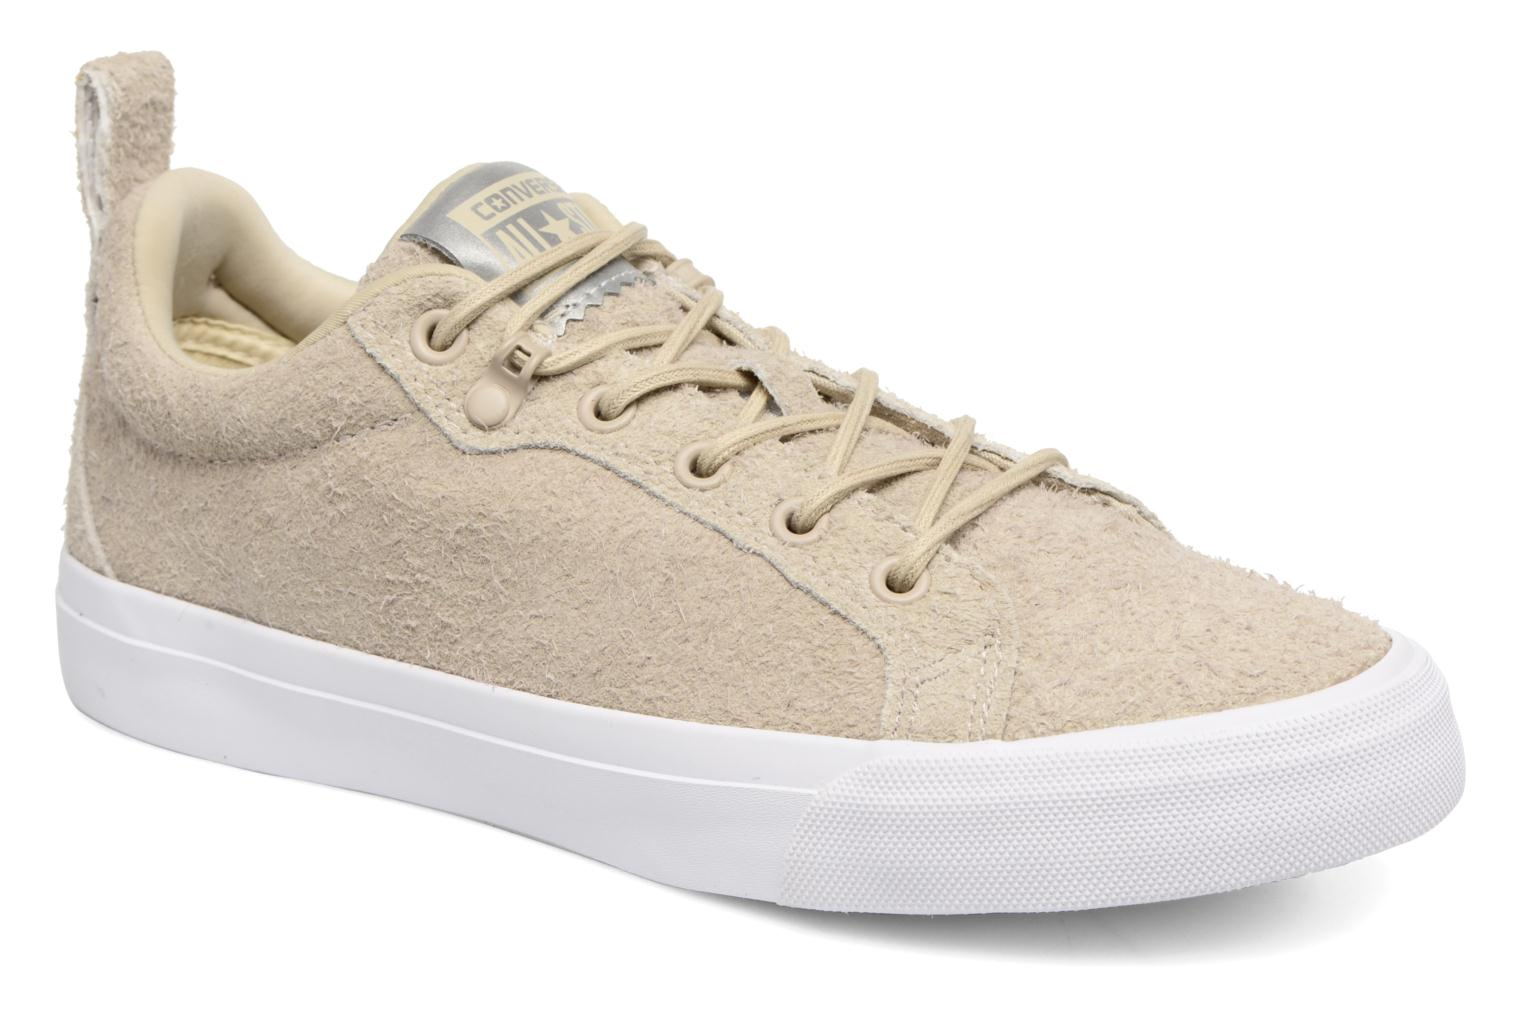 Chuck Taylor All Star Fulton Wooly Bully Ox Frayed Burlap/White/White